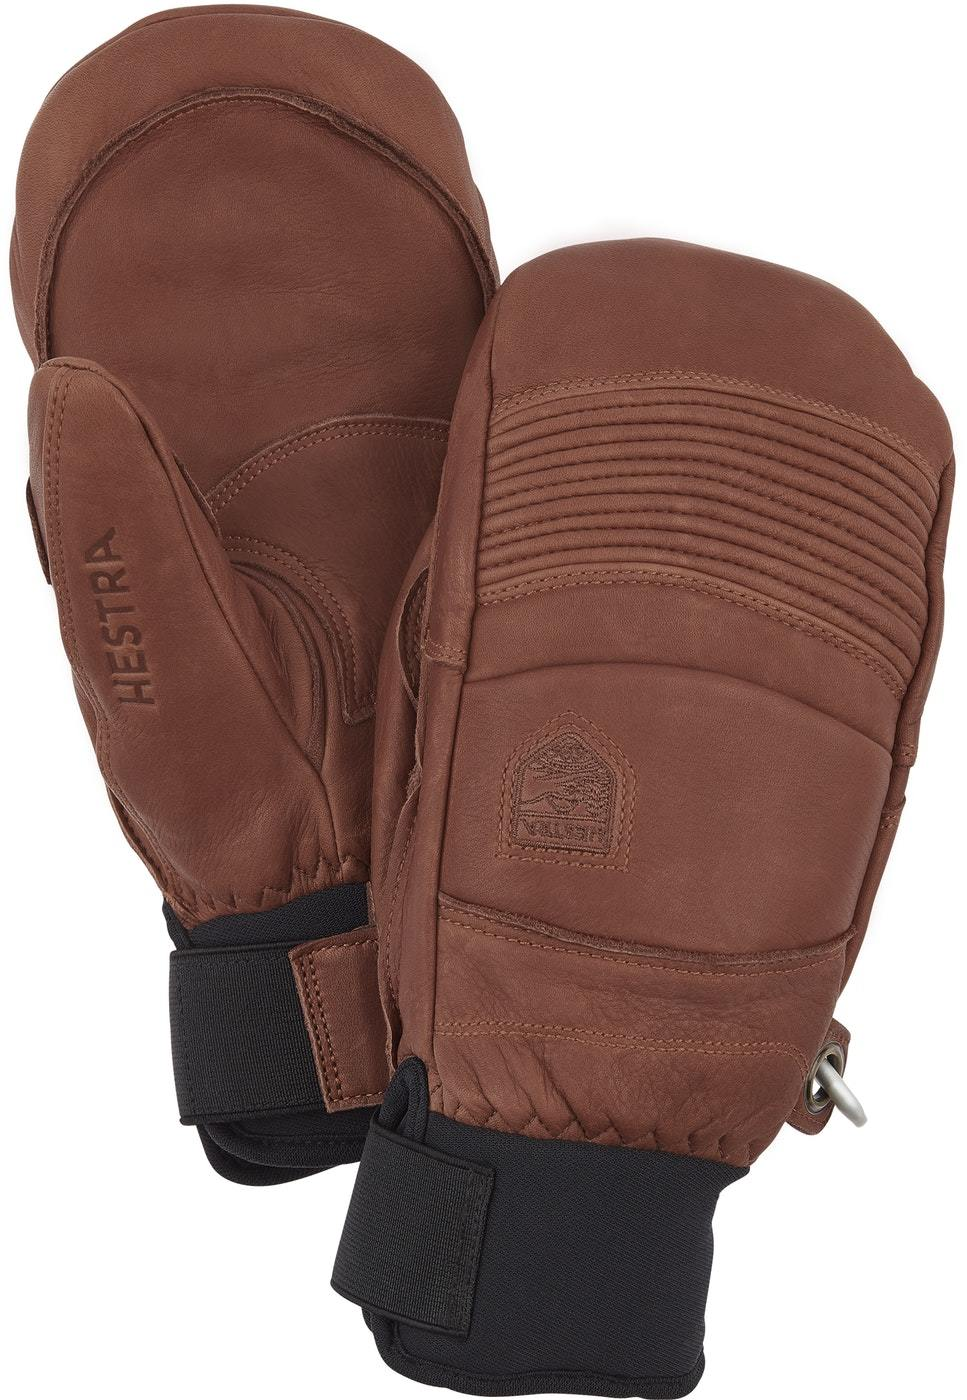 Leather Fall LIne Mitt - 31471-750